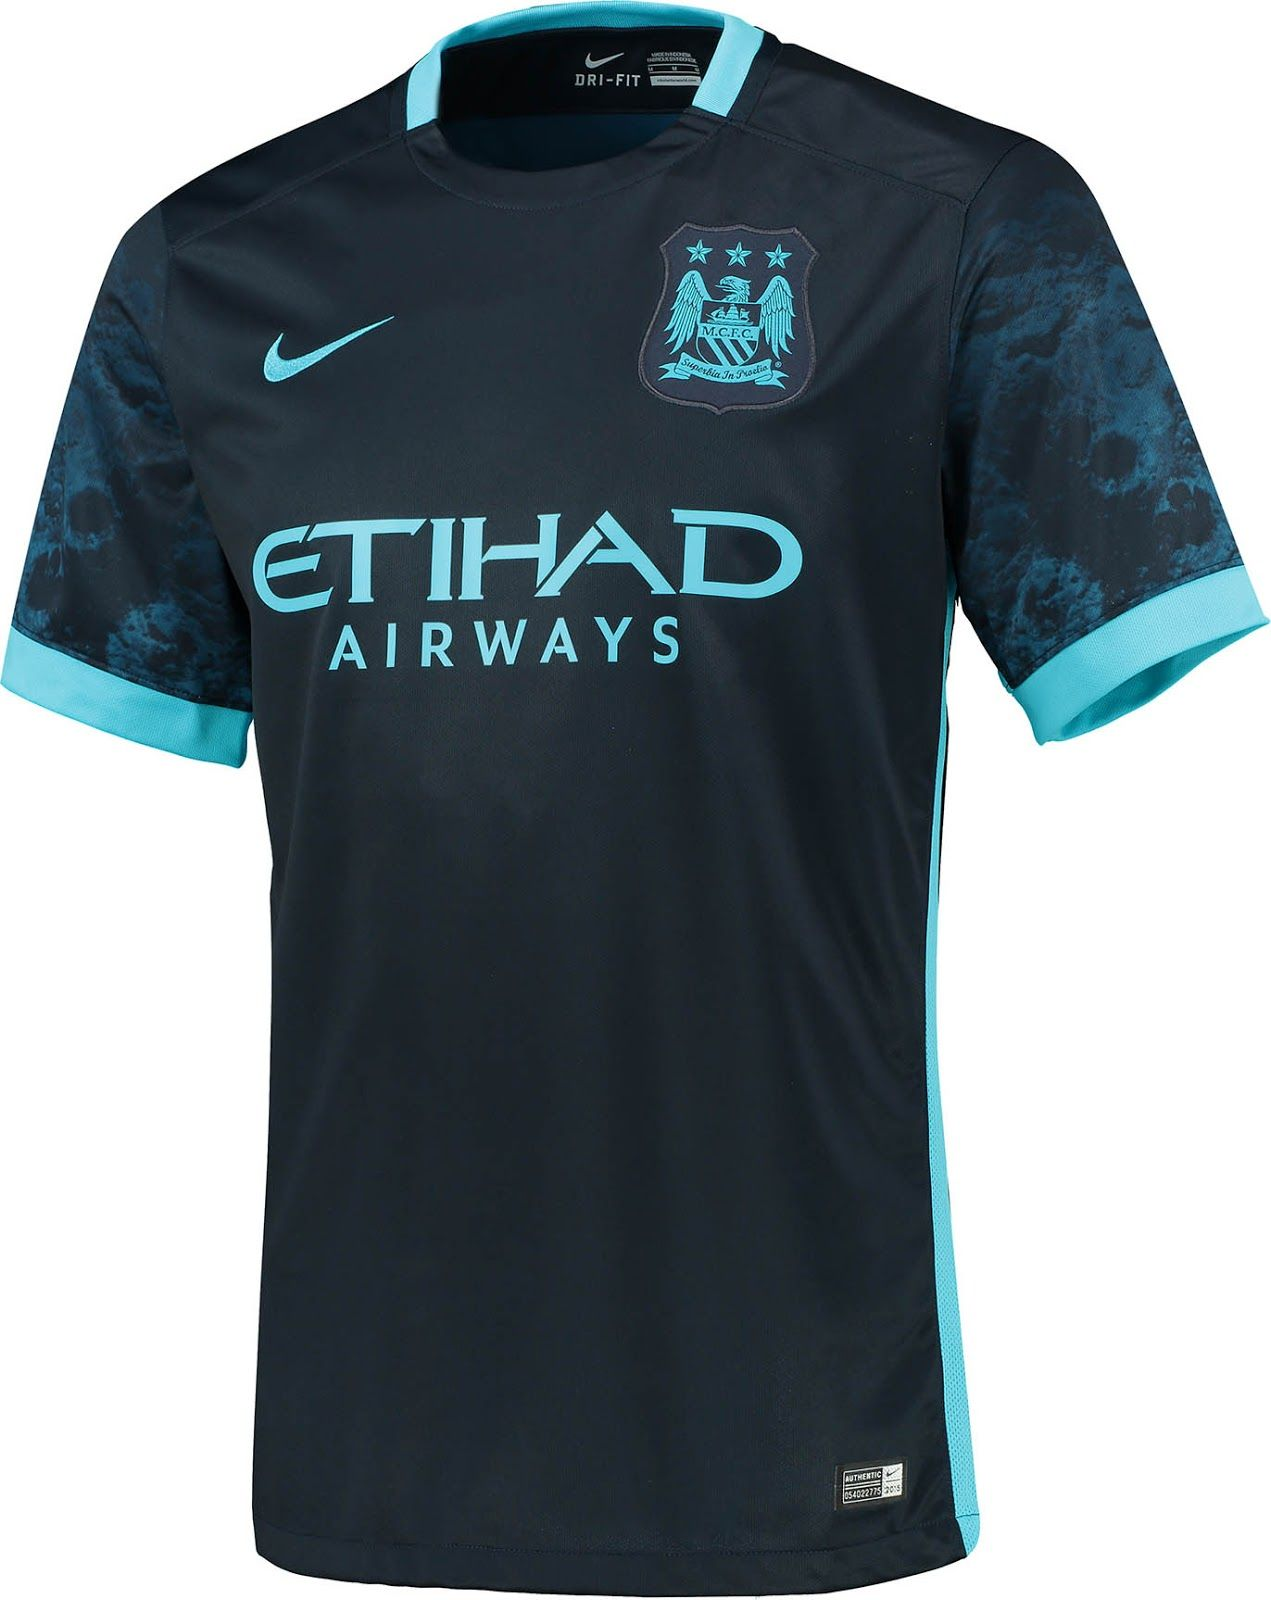 Manchester City 15-16 Away Kit Released | Manchester city, Soccer shirts,  Sweat clothes